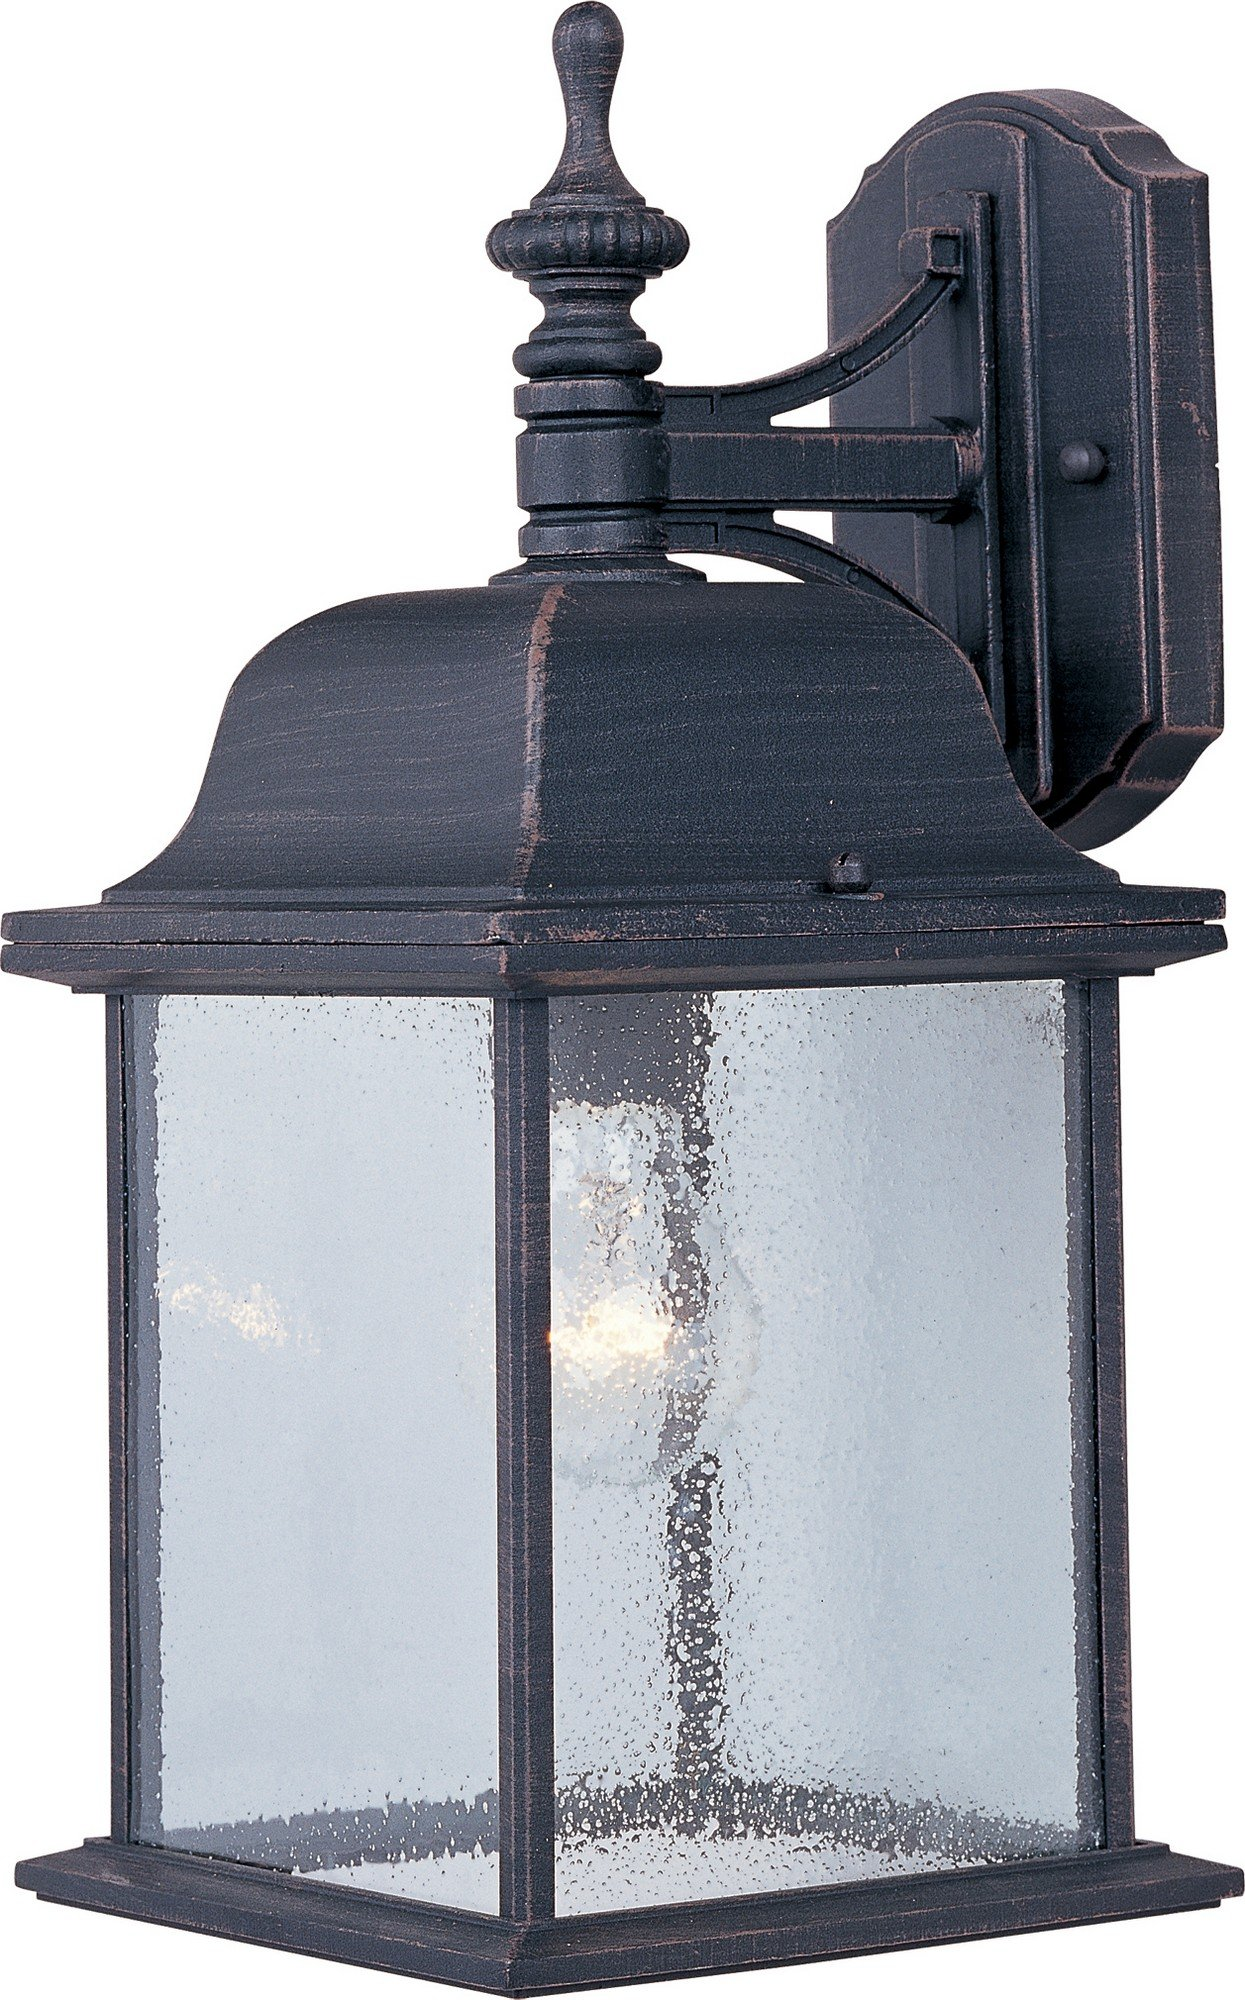 Maxim 1056RP Senator 1-Light Outdoor Wall Lantern, Rust Patina Finish, Seedy Glass, MB Incandescent Incandescent Bulb , 100W Max., Dry Safety Rating, 2700K Color Temp, Standard Dimmable, Glass Shade Material, 10350 Rated Lumens